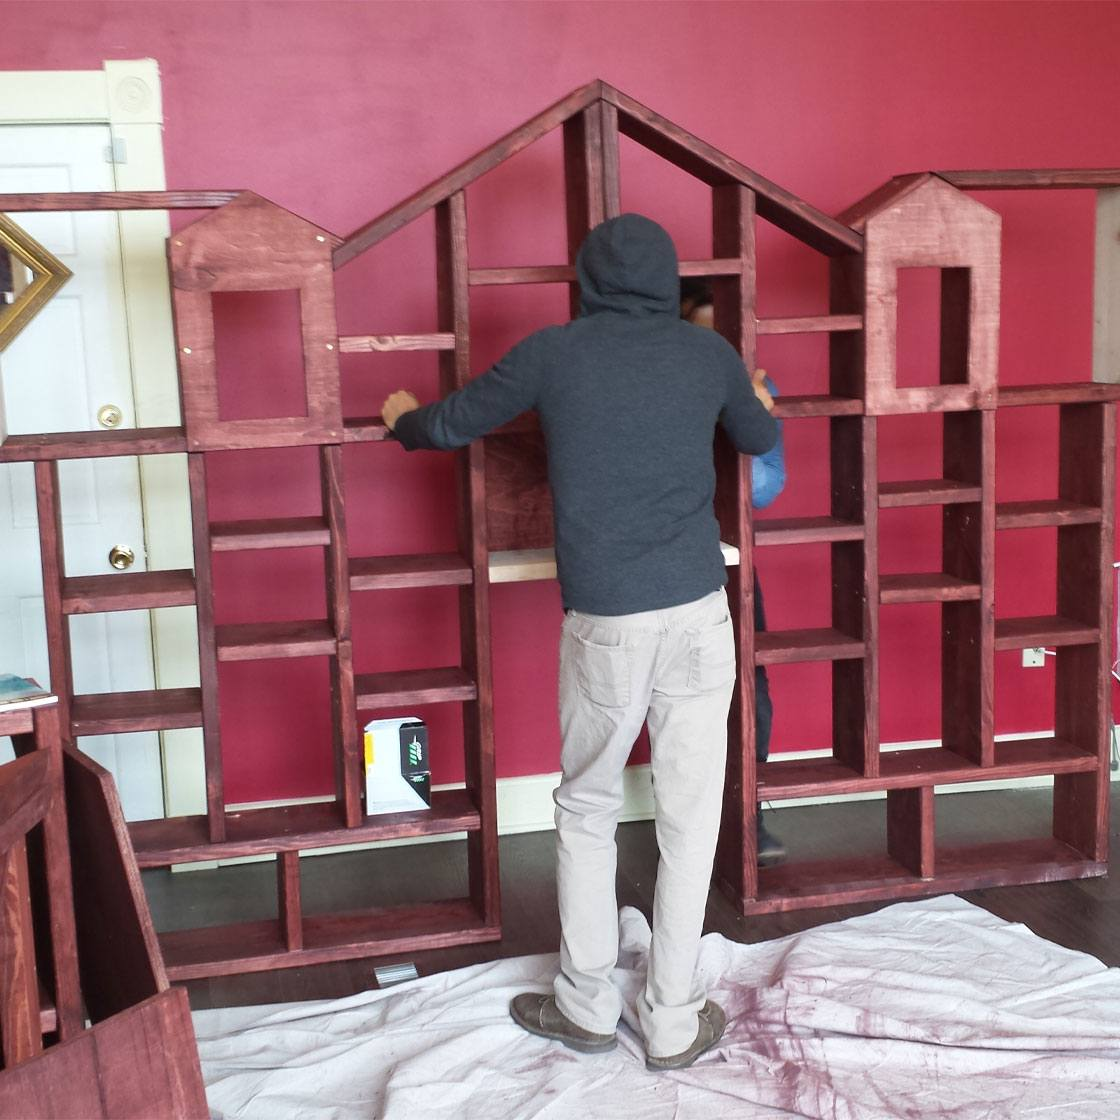 Someone building a decorative bookshelf